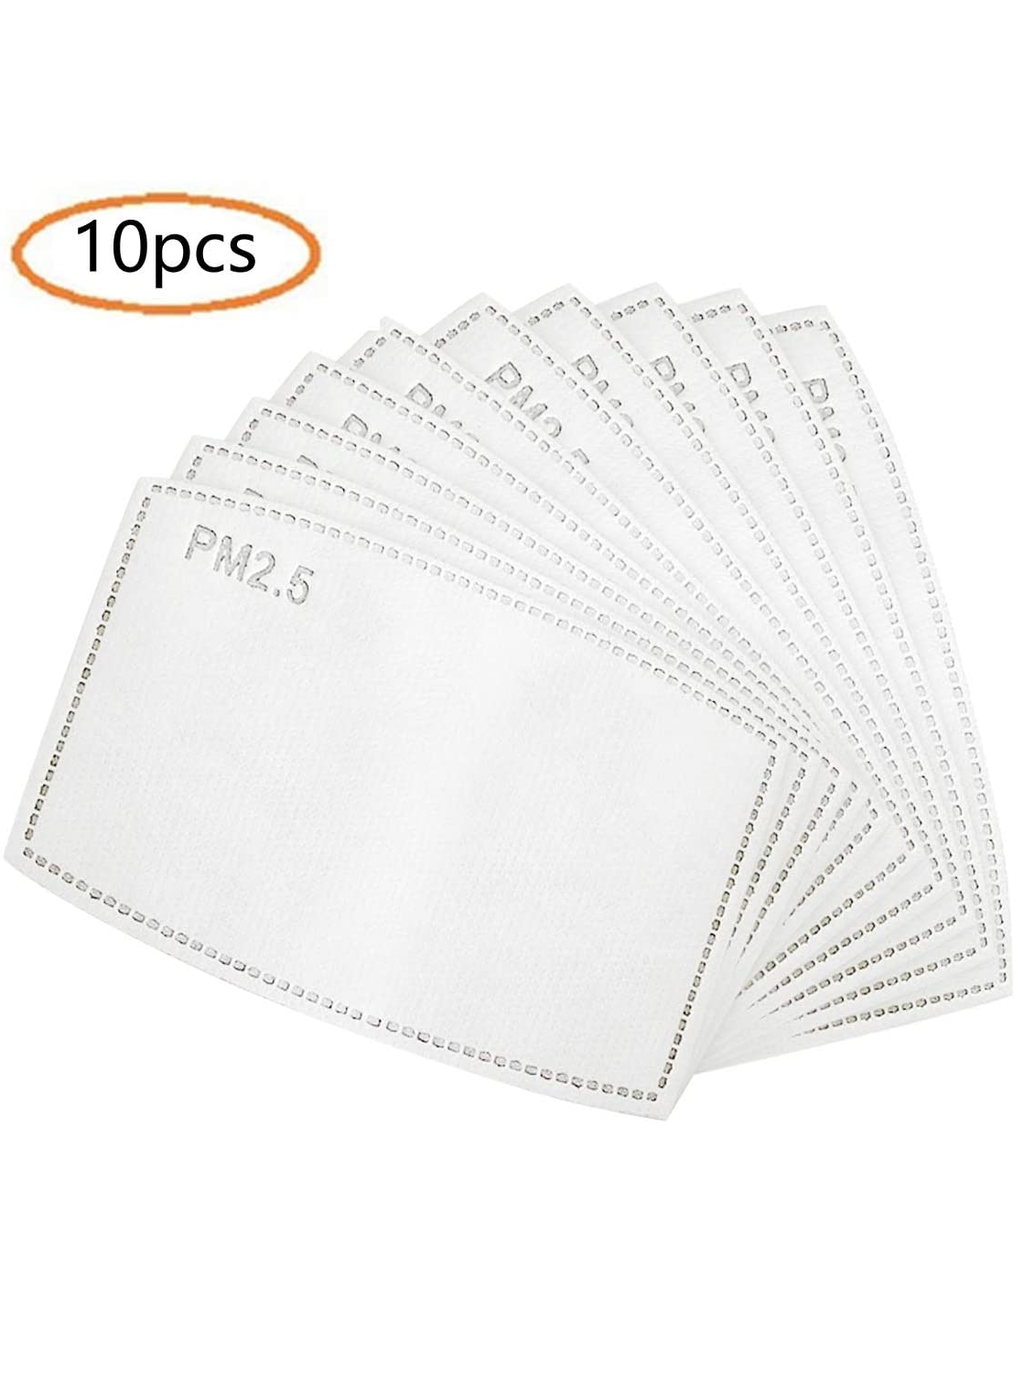 Pack of 10 PM2.5 Mask filter 5 Layers Replaceable Activated Carbon Filter